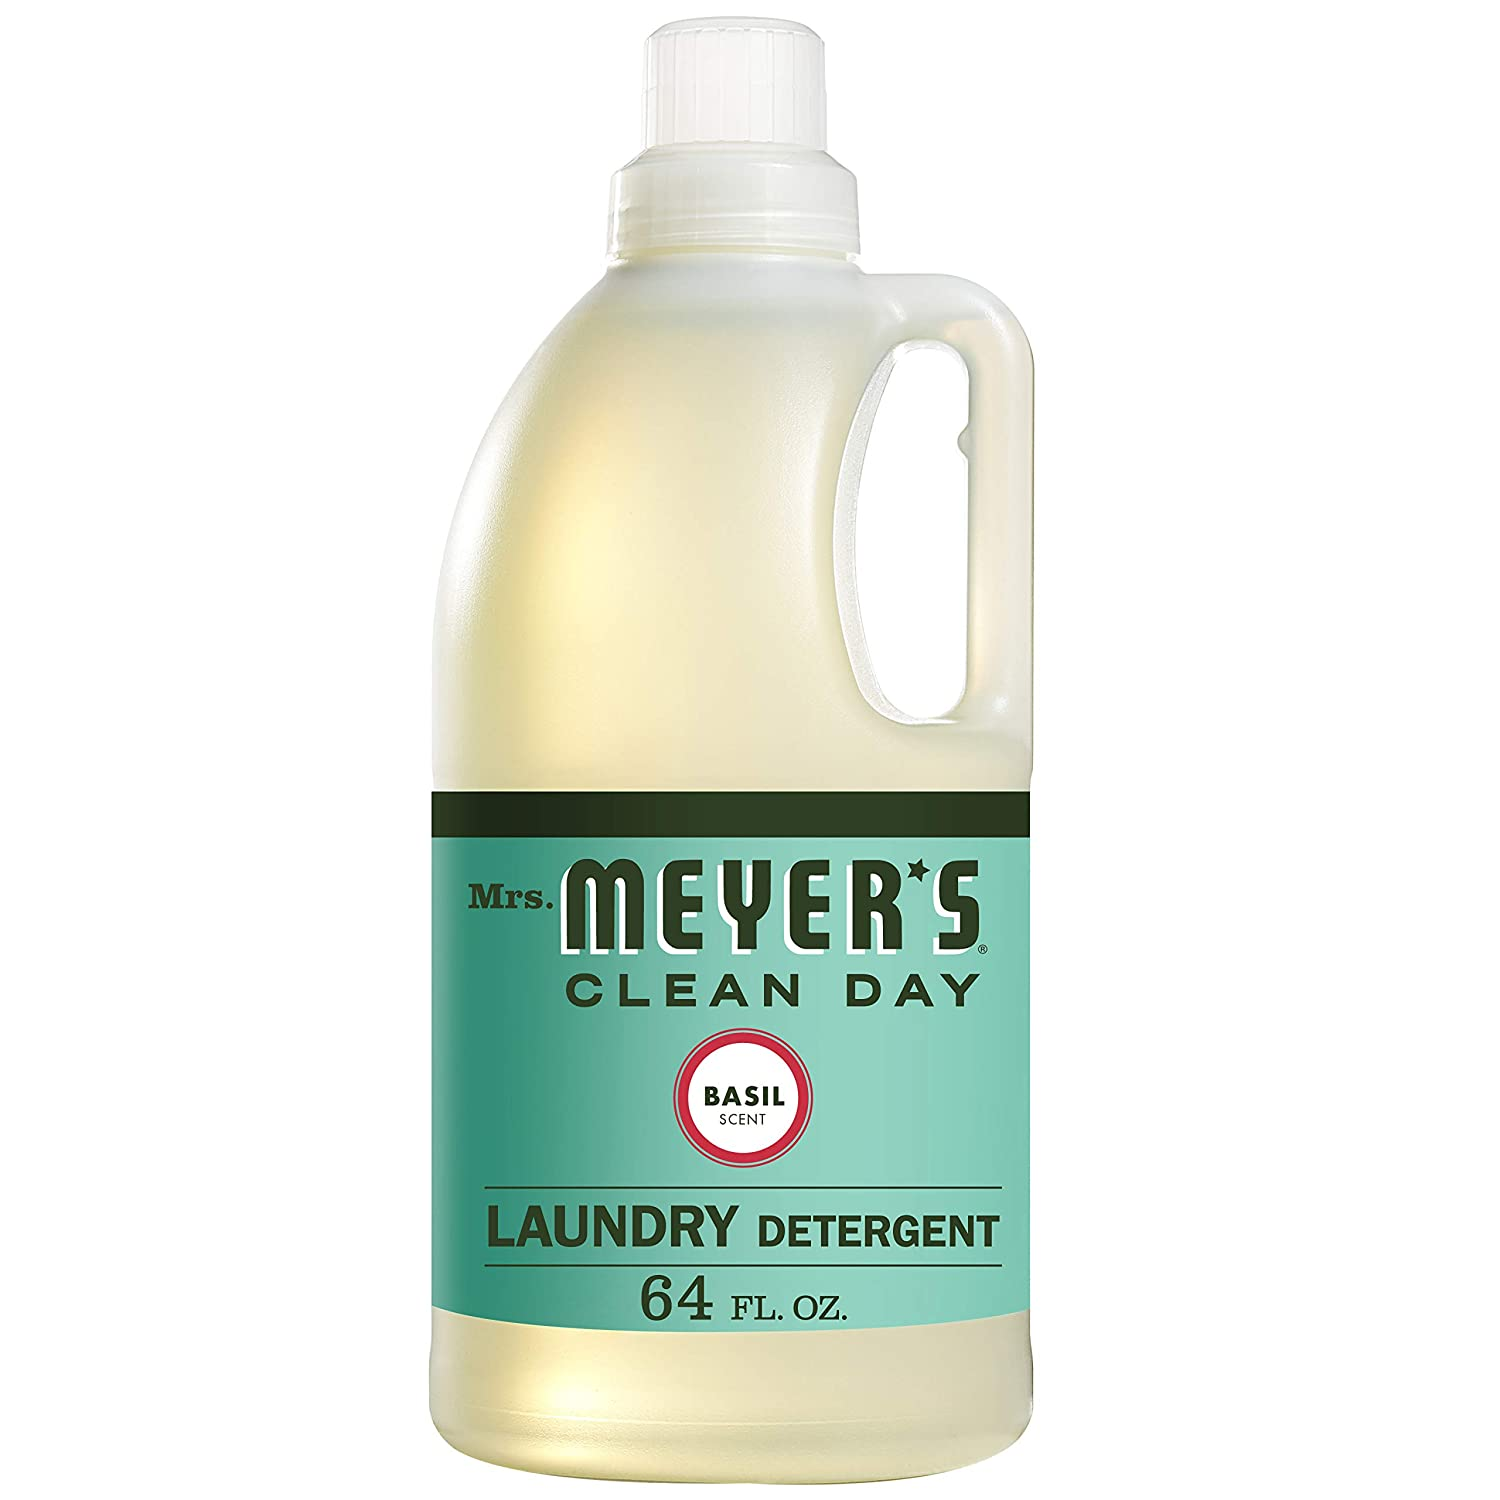 Mrs. Meyer's Clean Day Liquid Laundry Detergent, Cruelty Free and Biodegradable Formula, Basil Scent, 64 oz